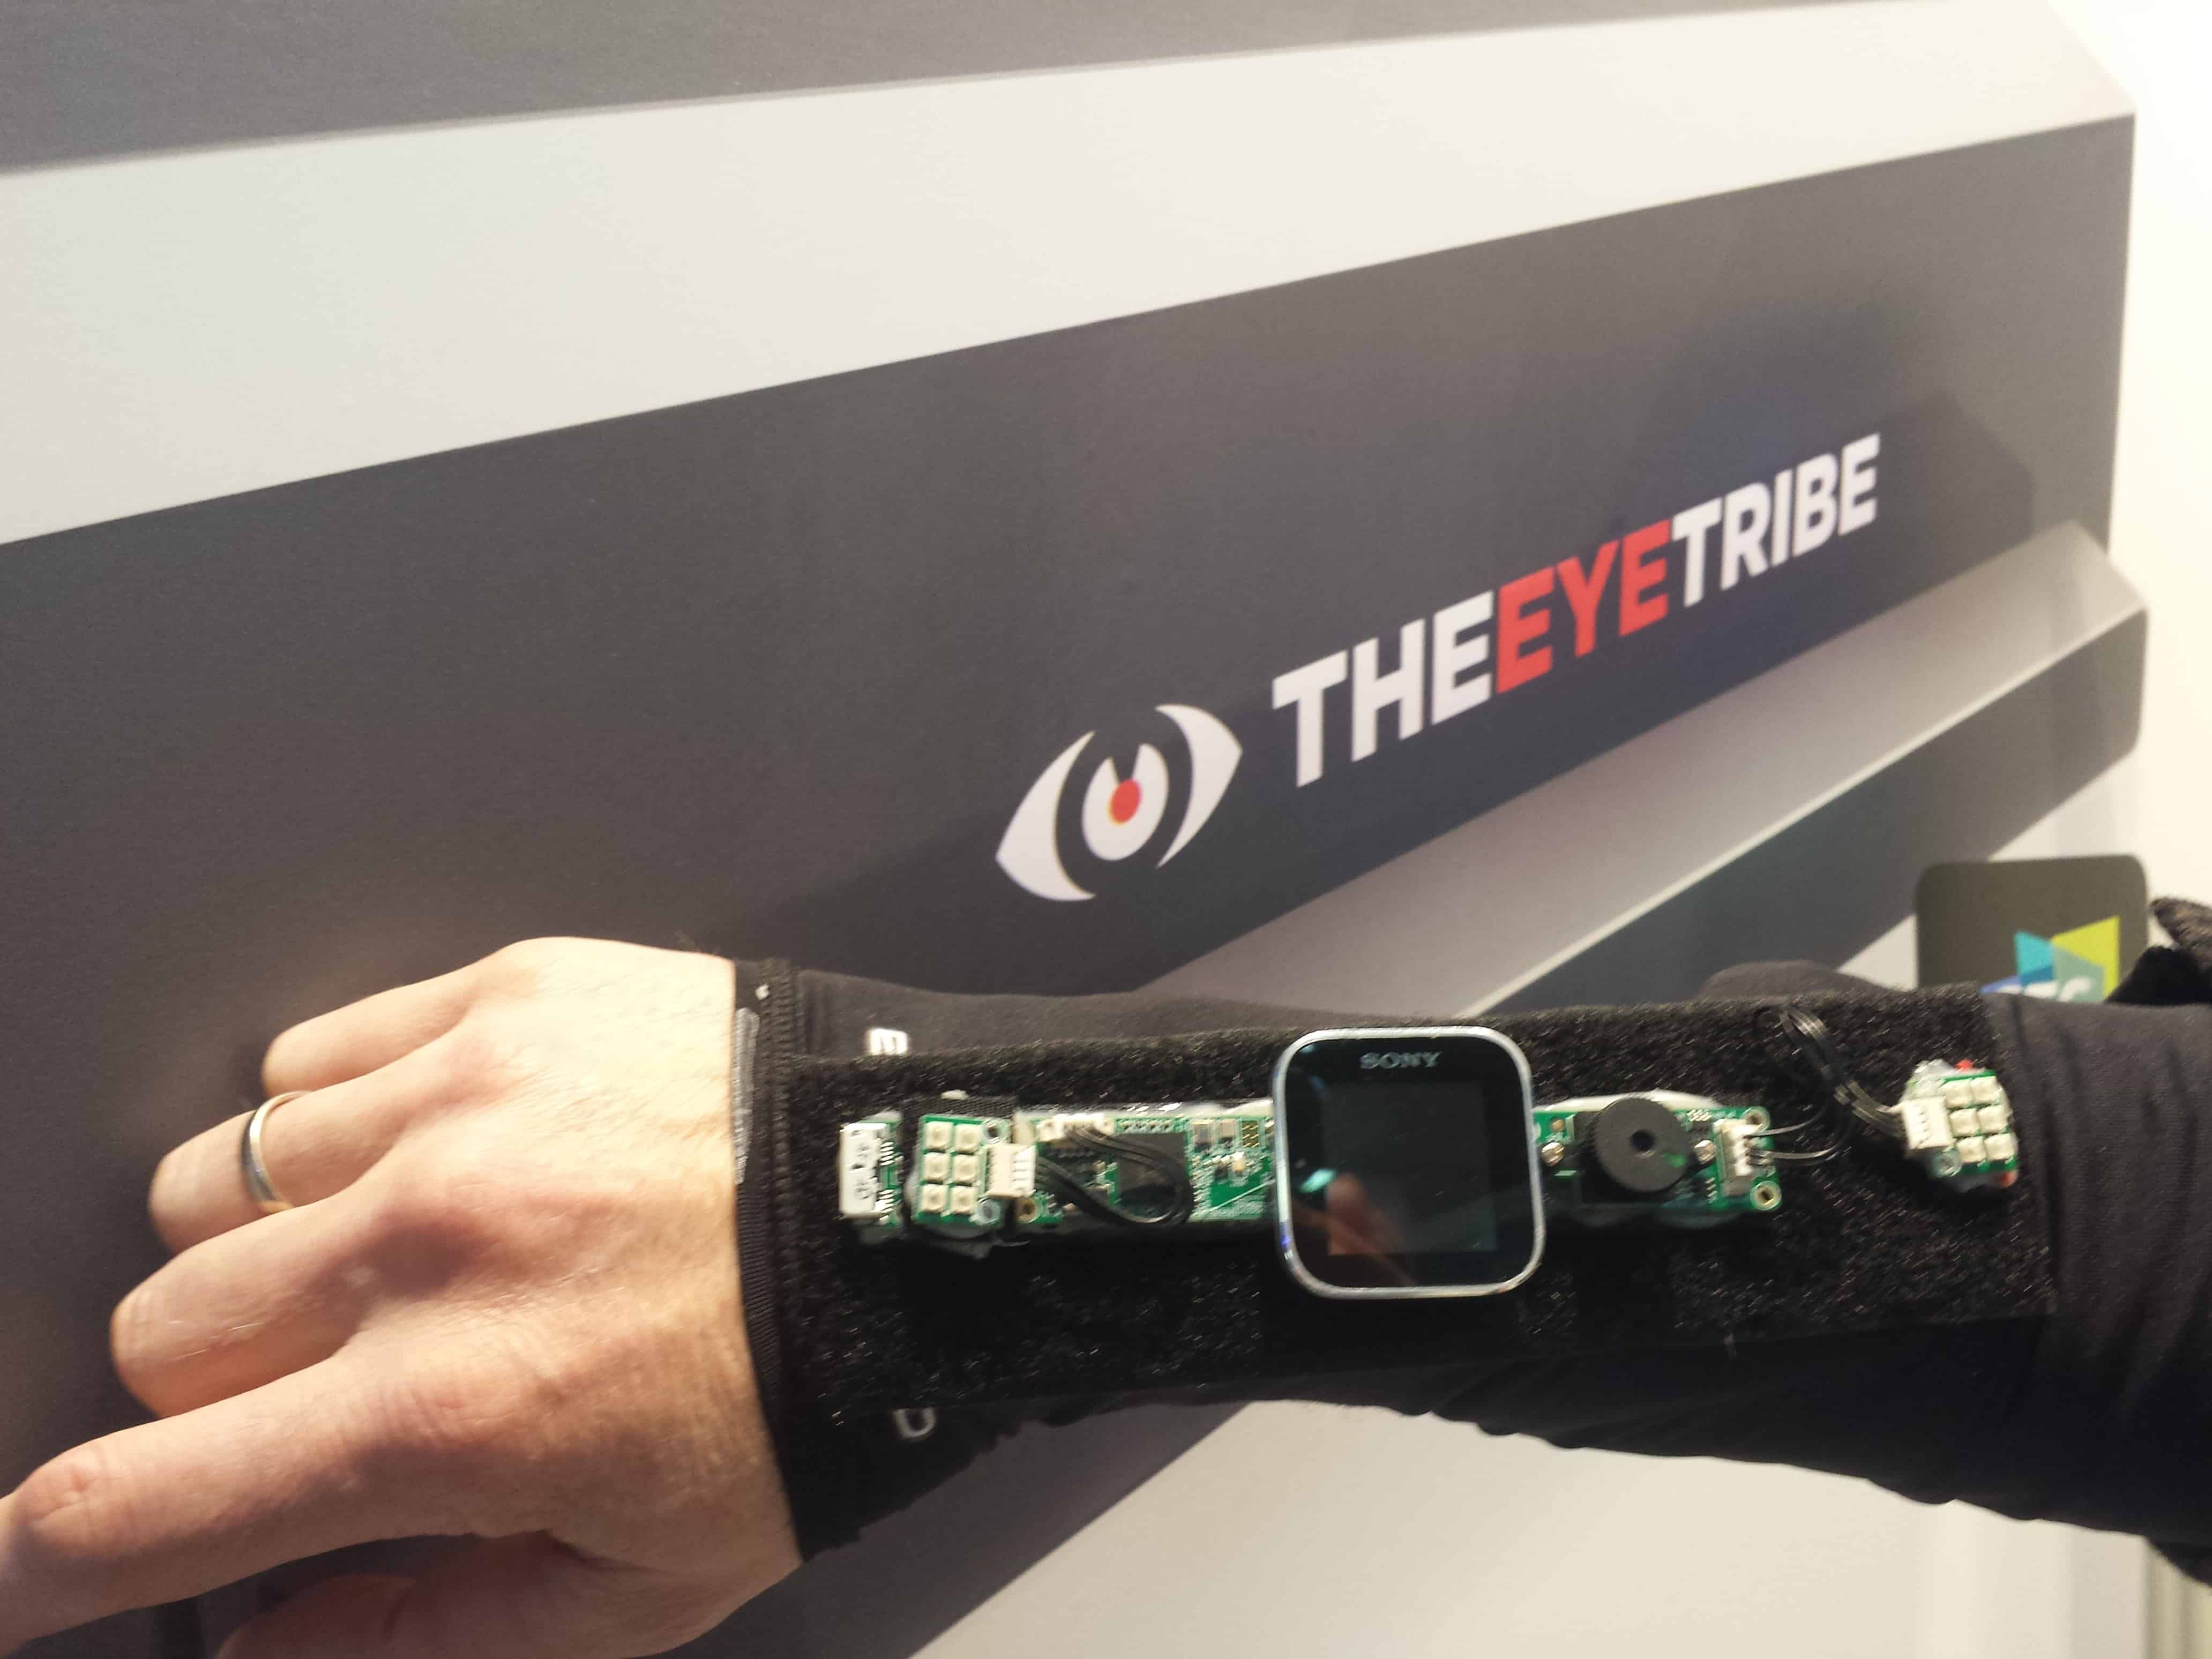 The Eye Tribe smart watch prototype